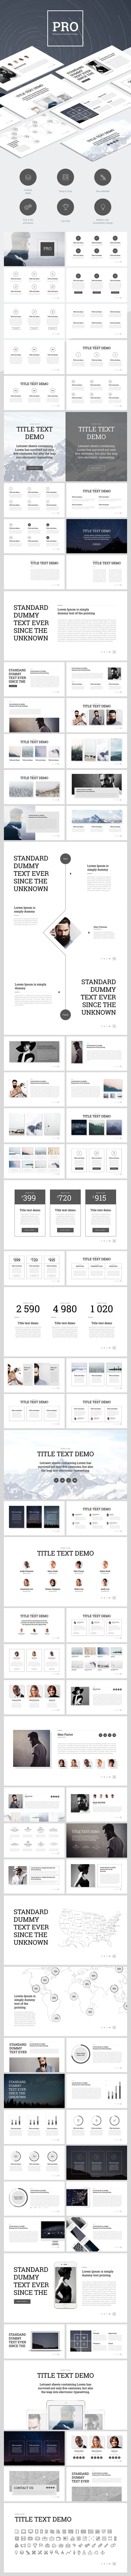 50 best powerpoint template images on pinterest aspect ratio the pro powerpoint template is our multipurpose editable sample more professional templates alramifo Choice Image